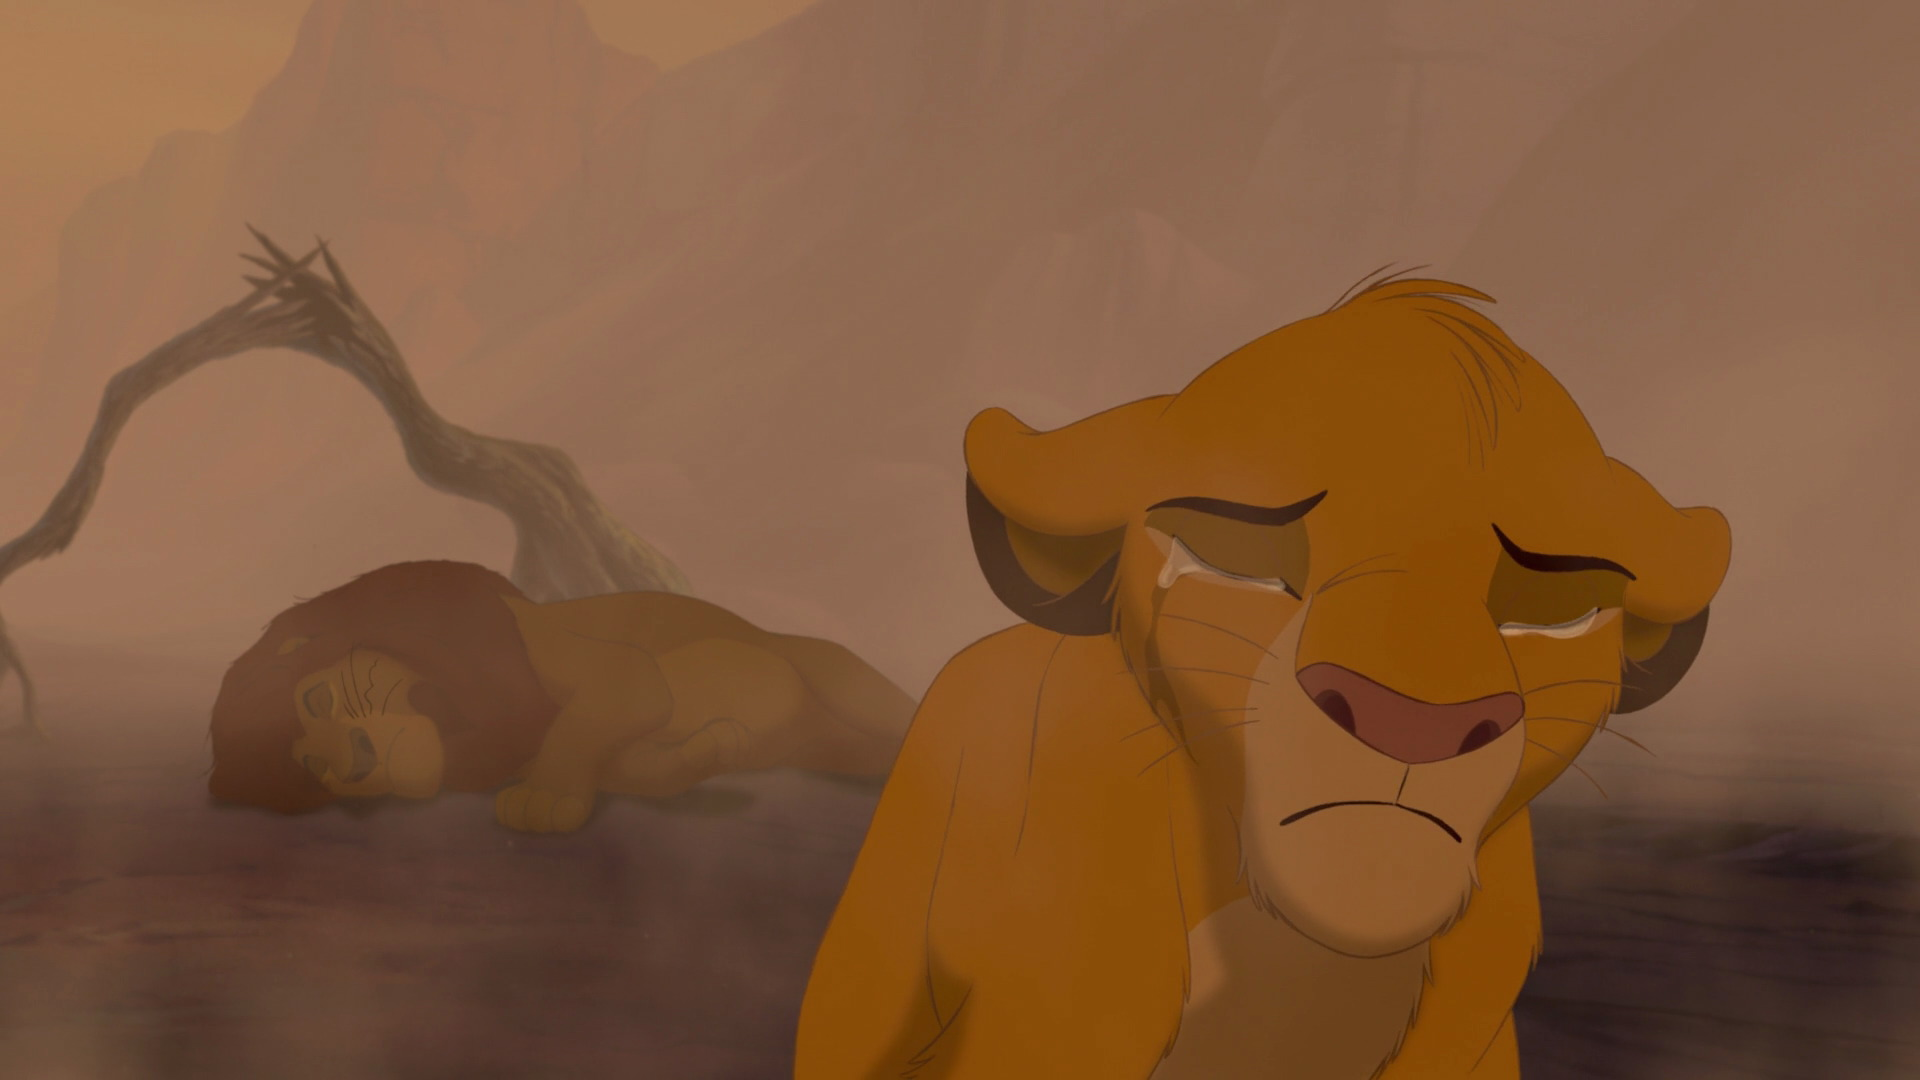 The Lion King Simba